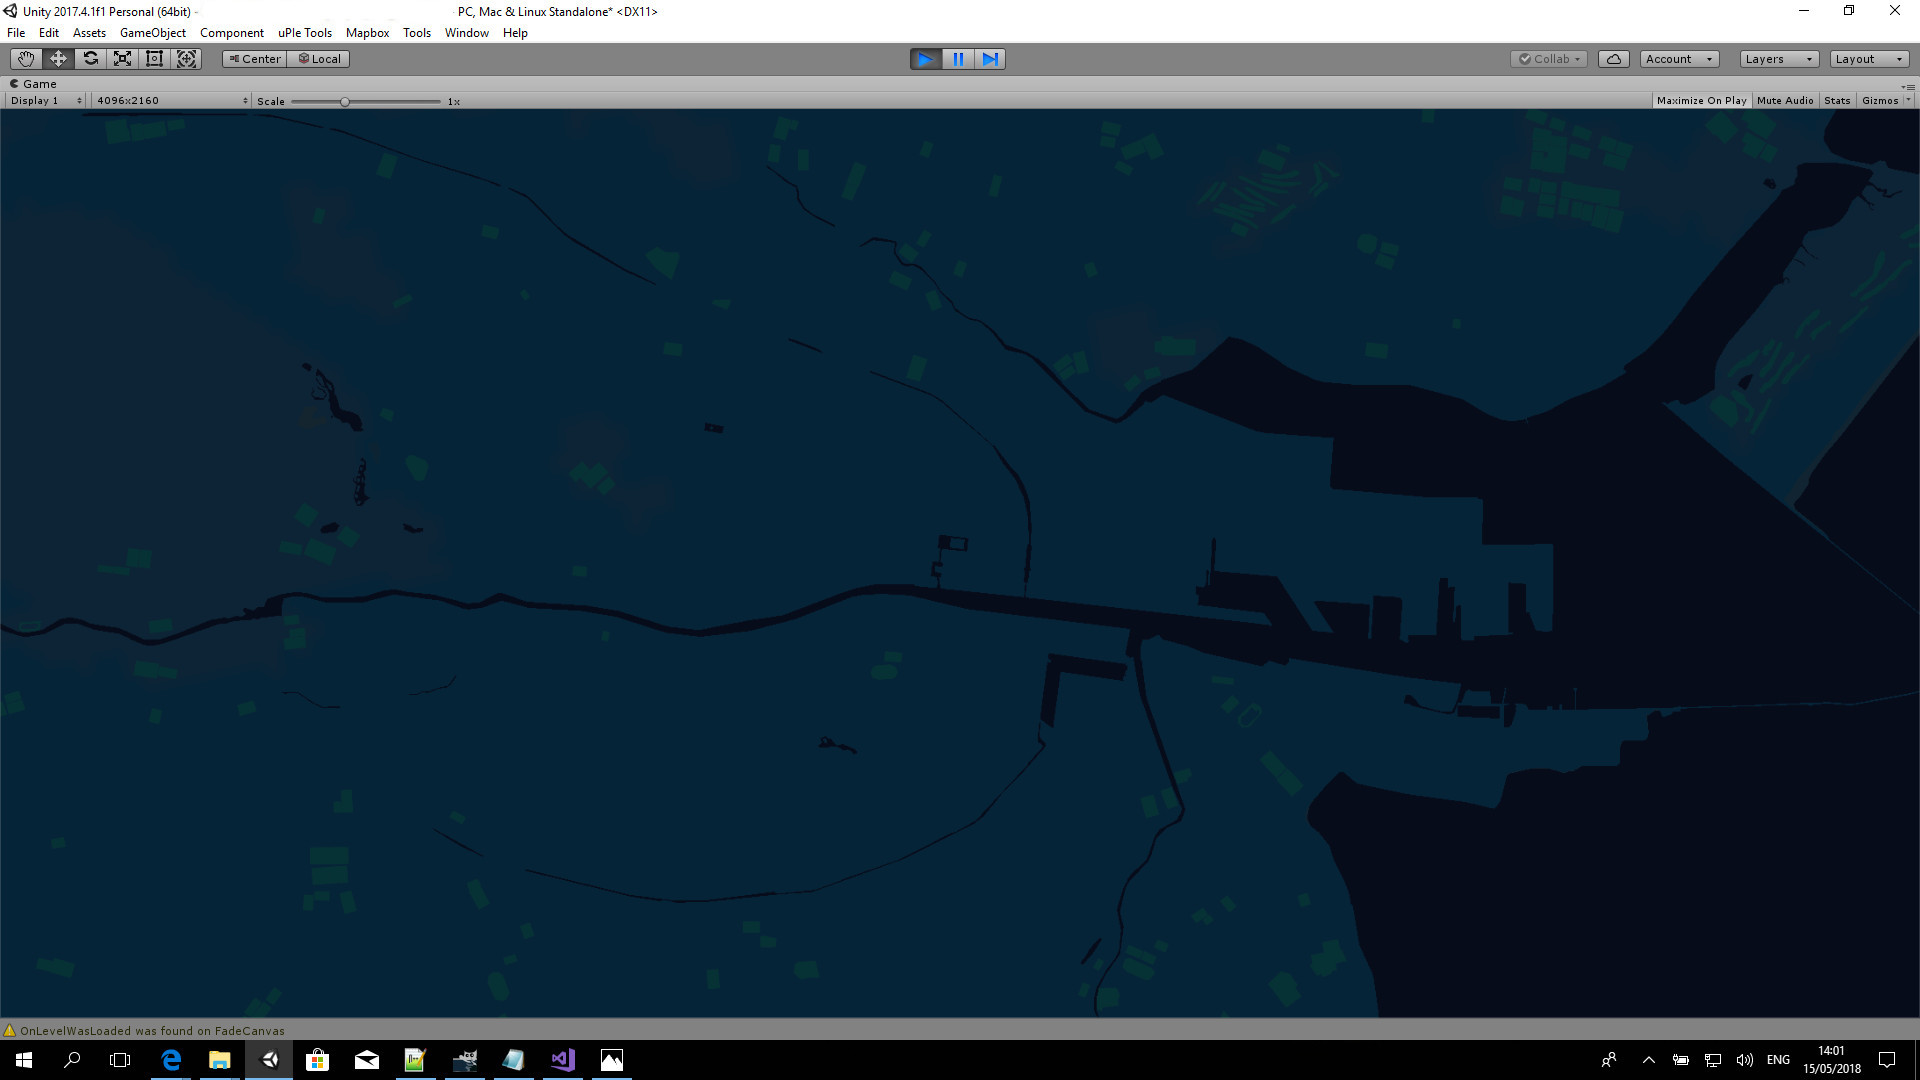 Unity SDK fails to render key features when using custom map